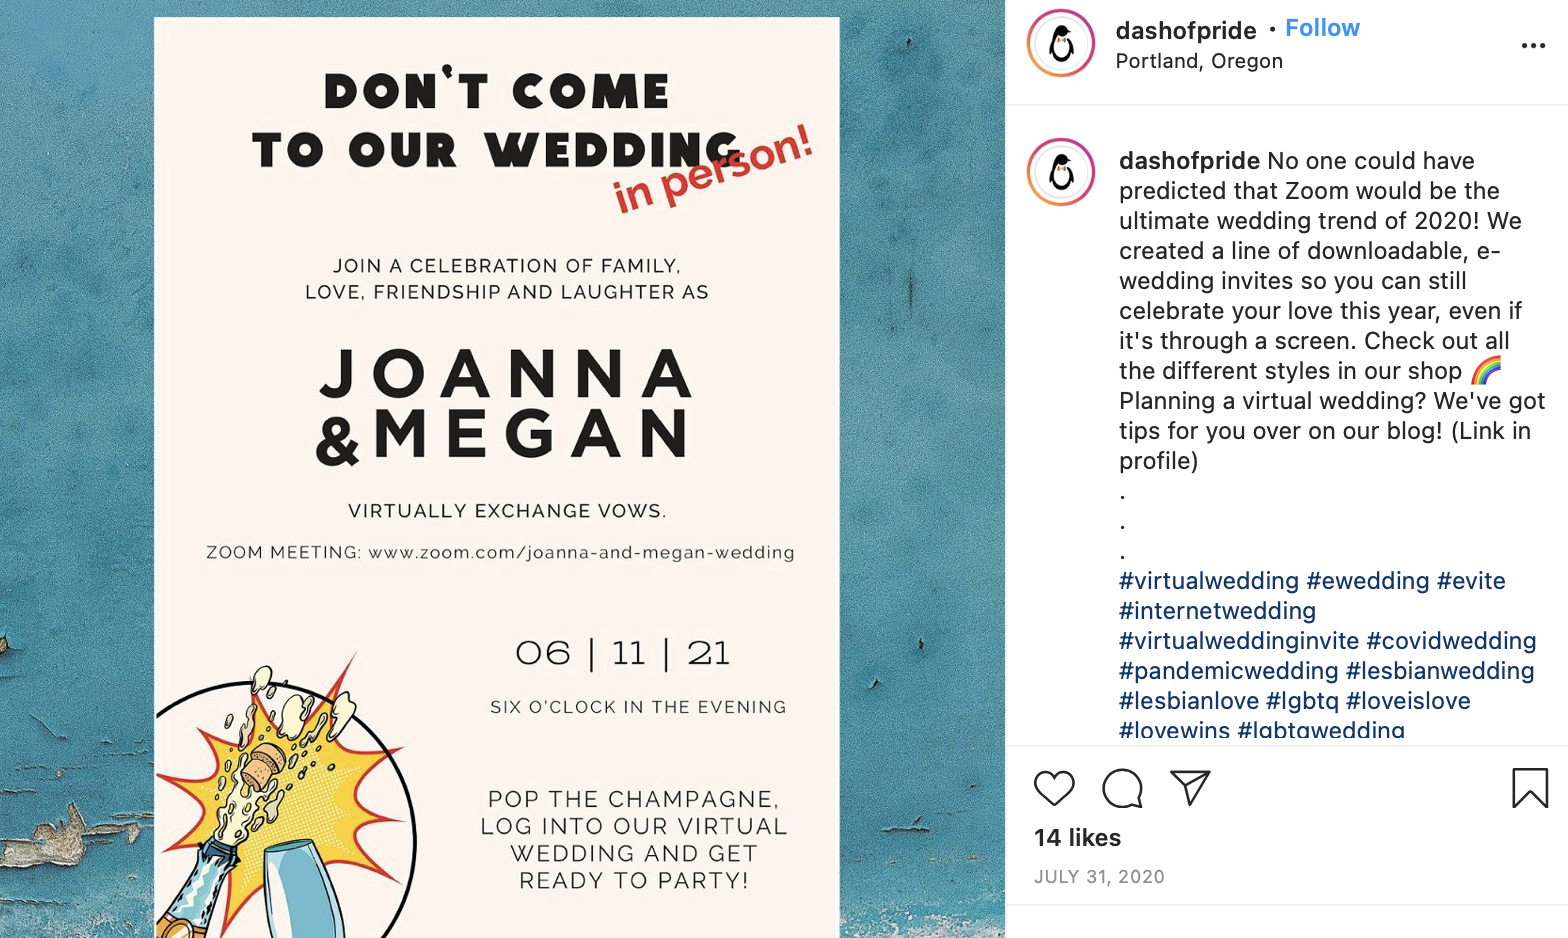 wedding invitation to a virtual wedding